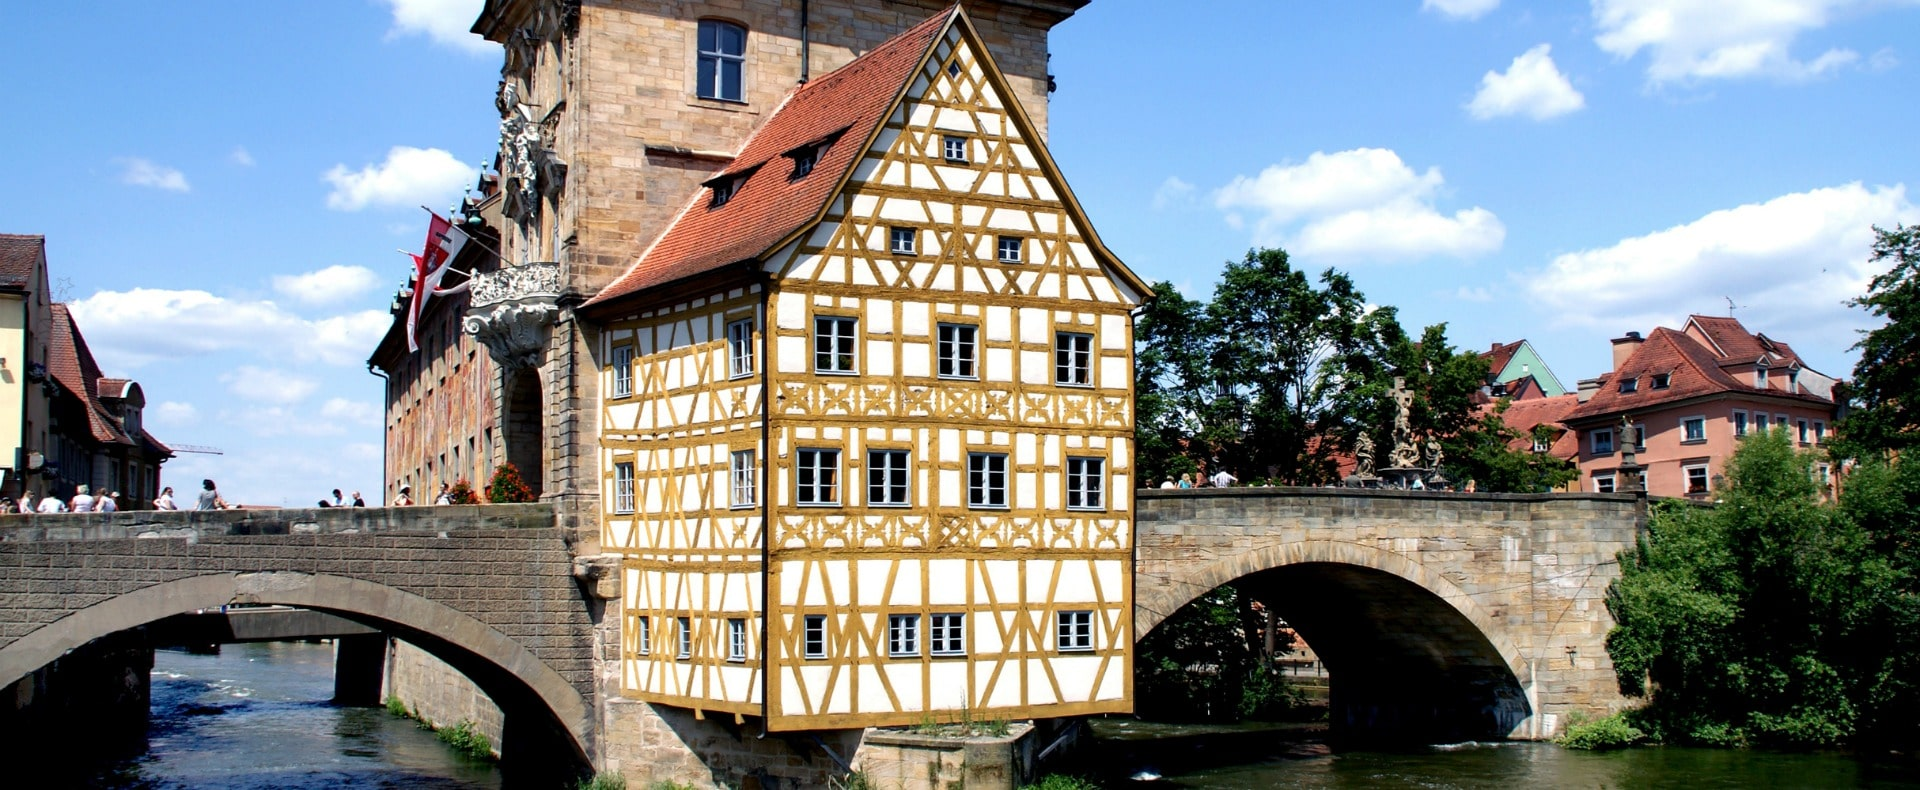 Bamberg, Germany